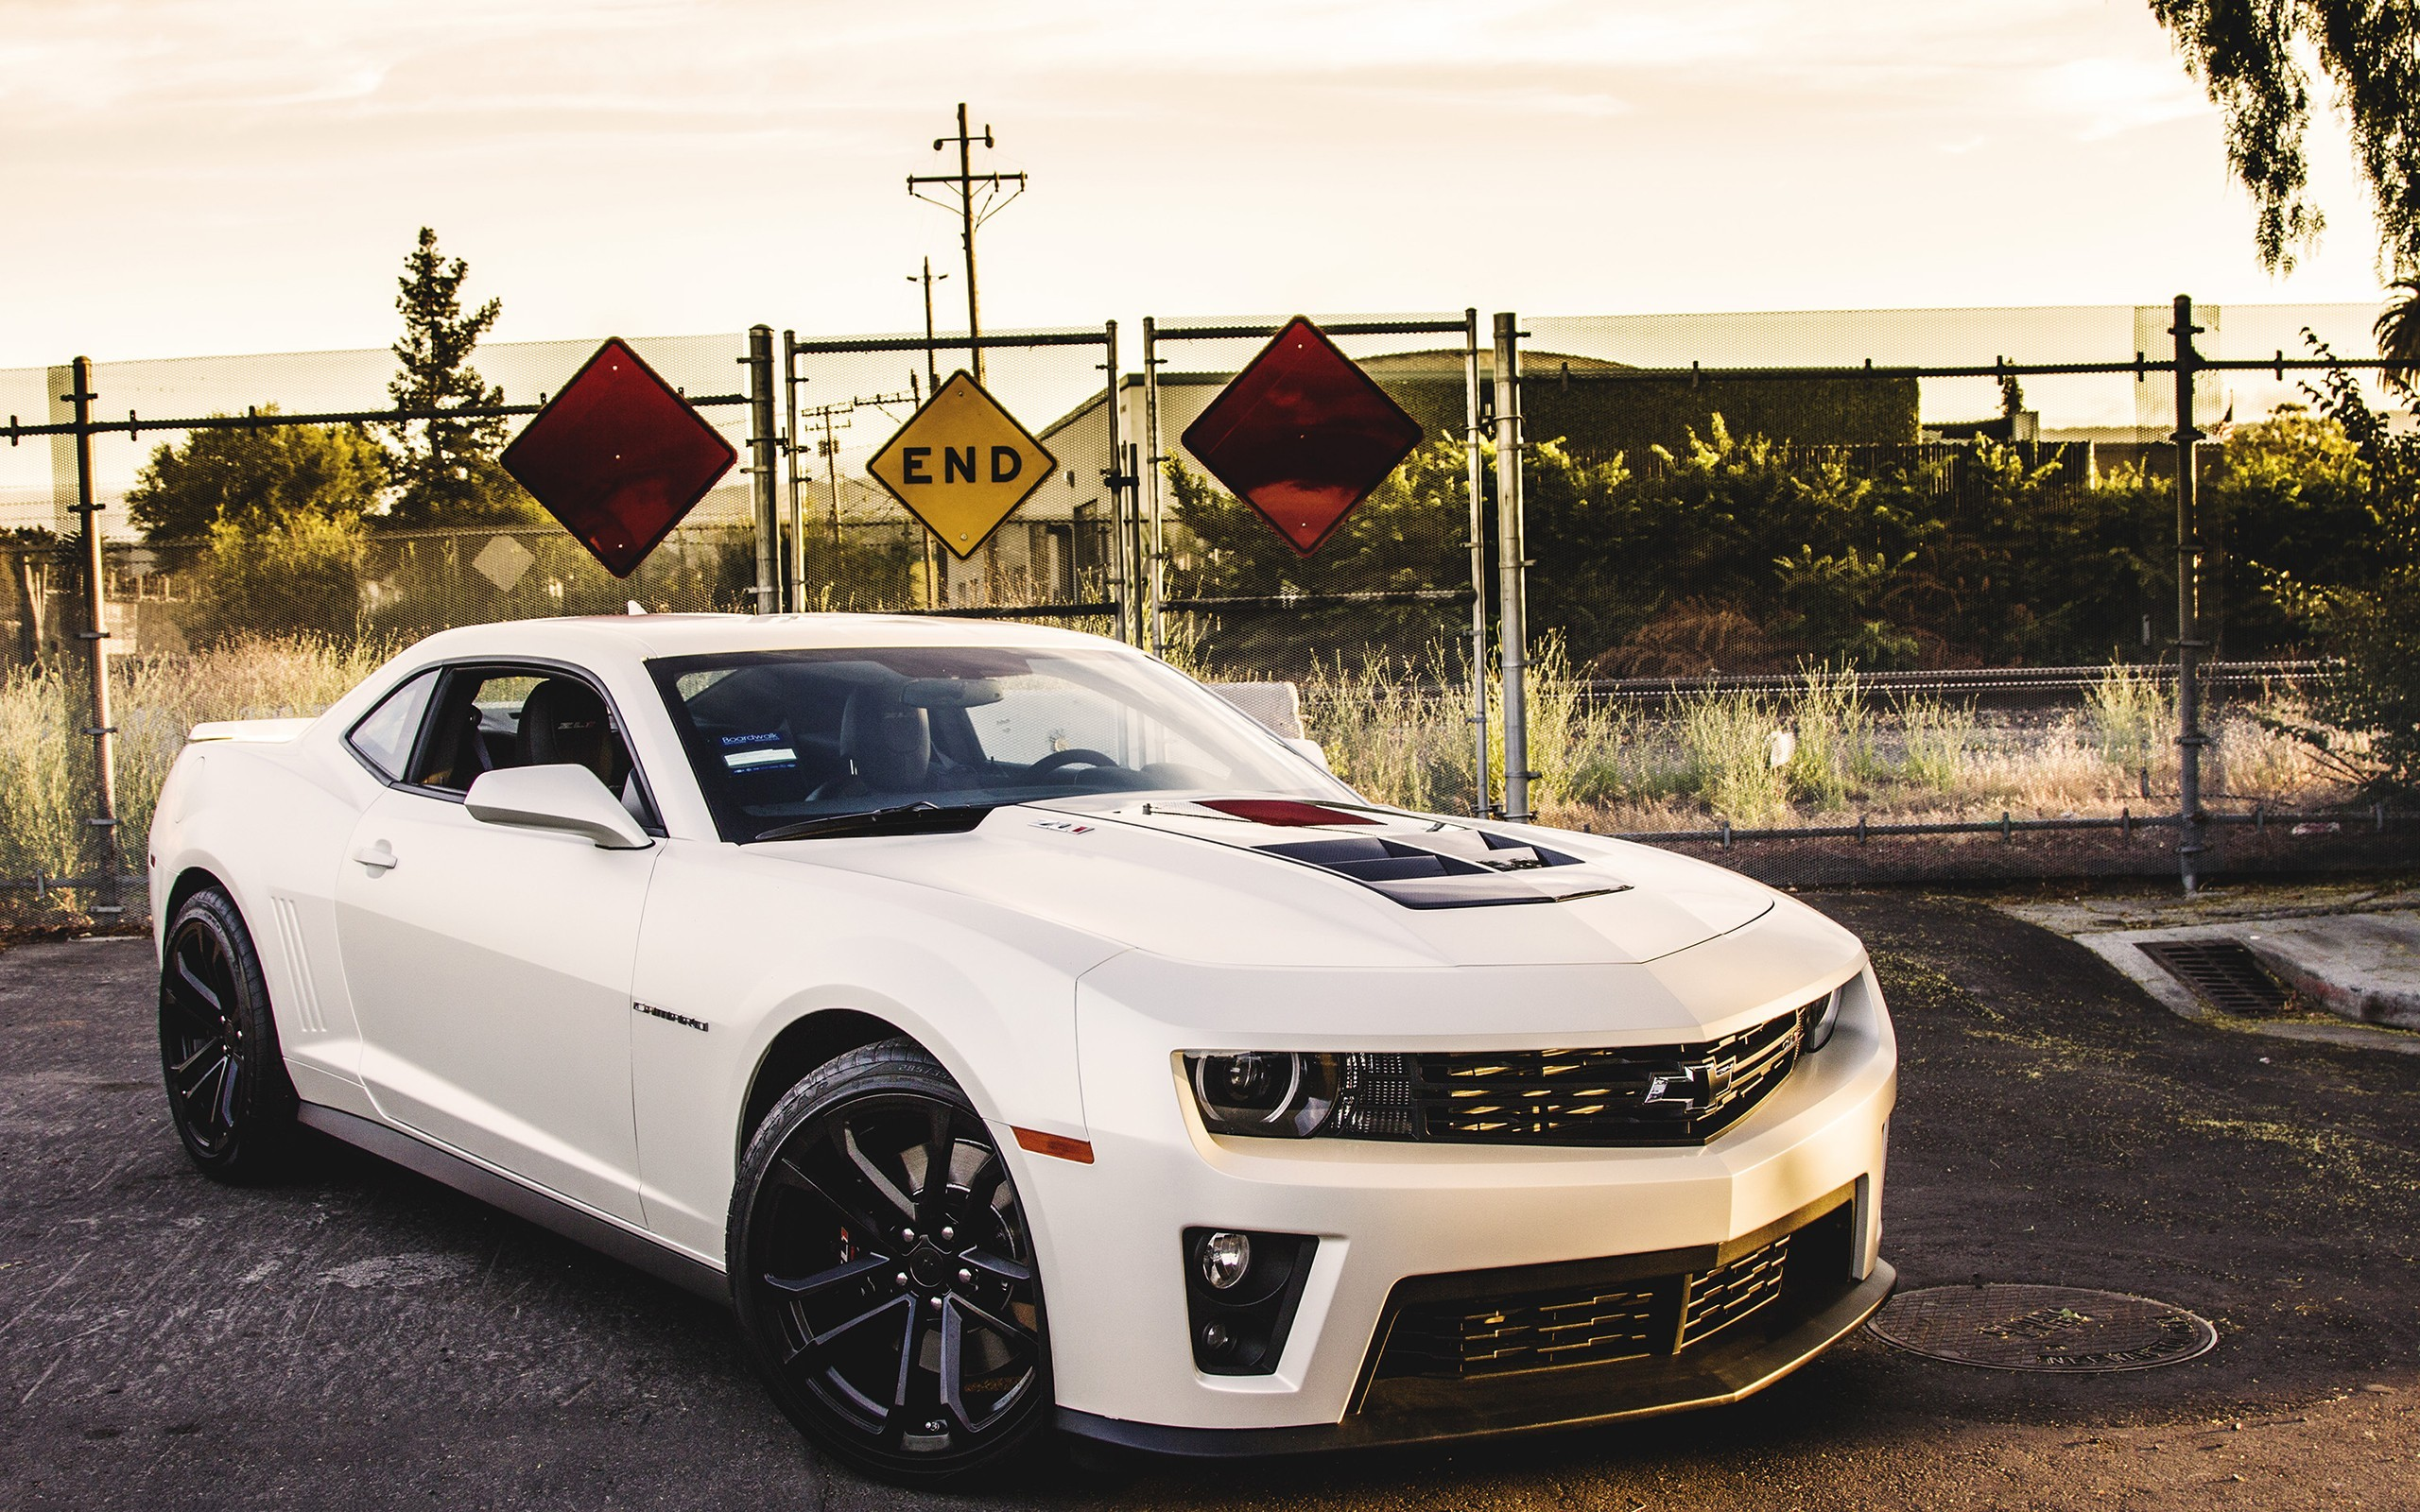 Chevrolet Camaro ZL1 wallpaper 28089 2560x1600